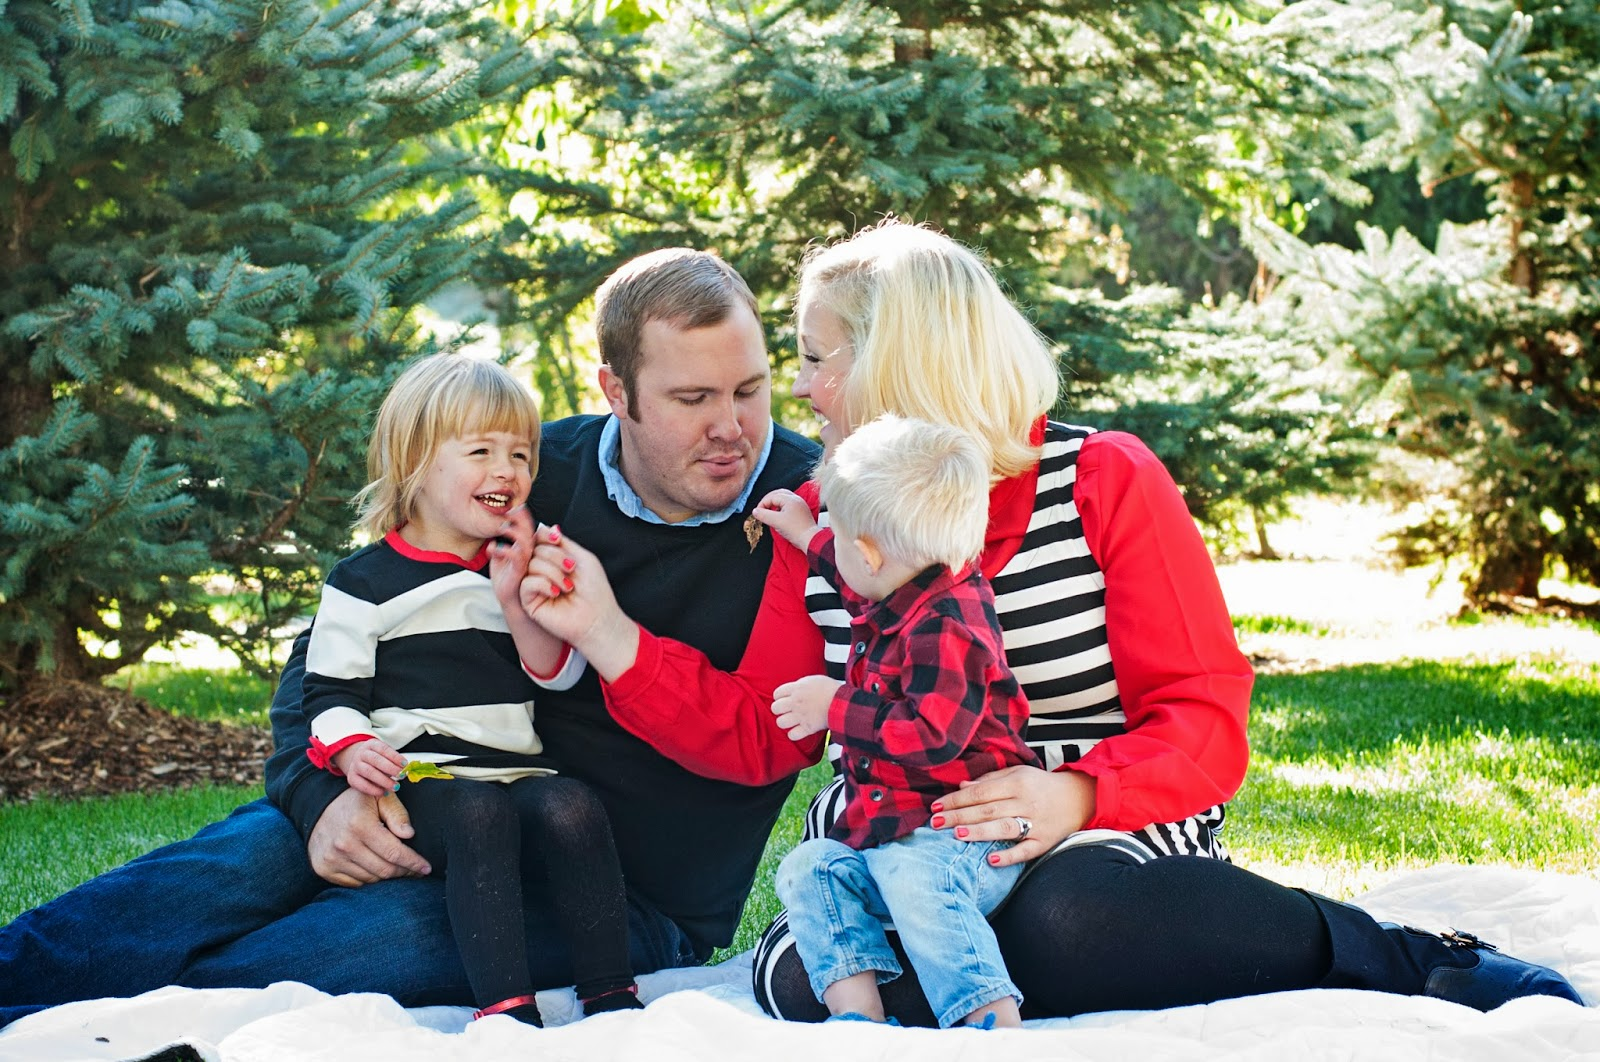 utah family photographer, j & h photography